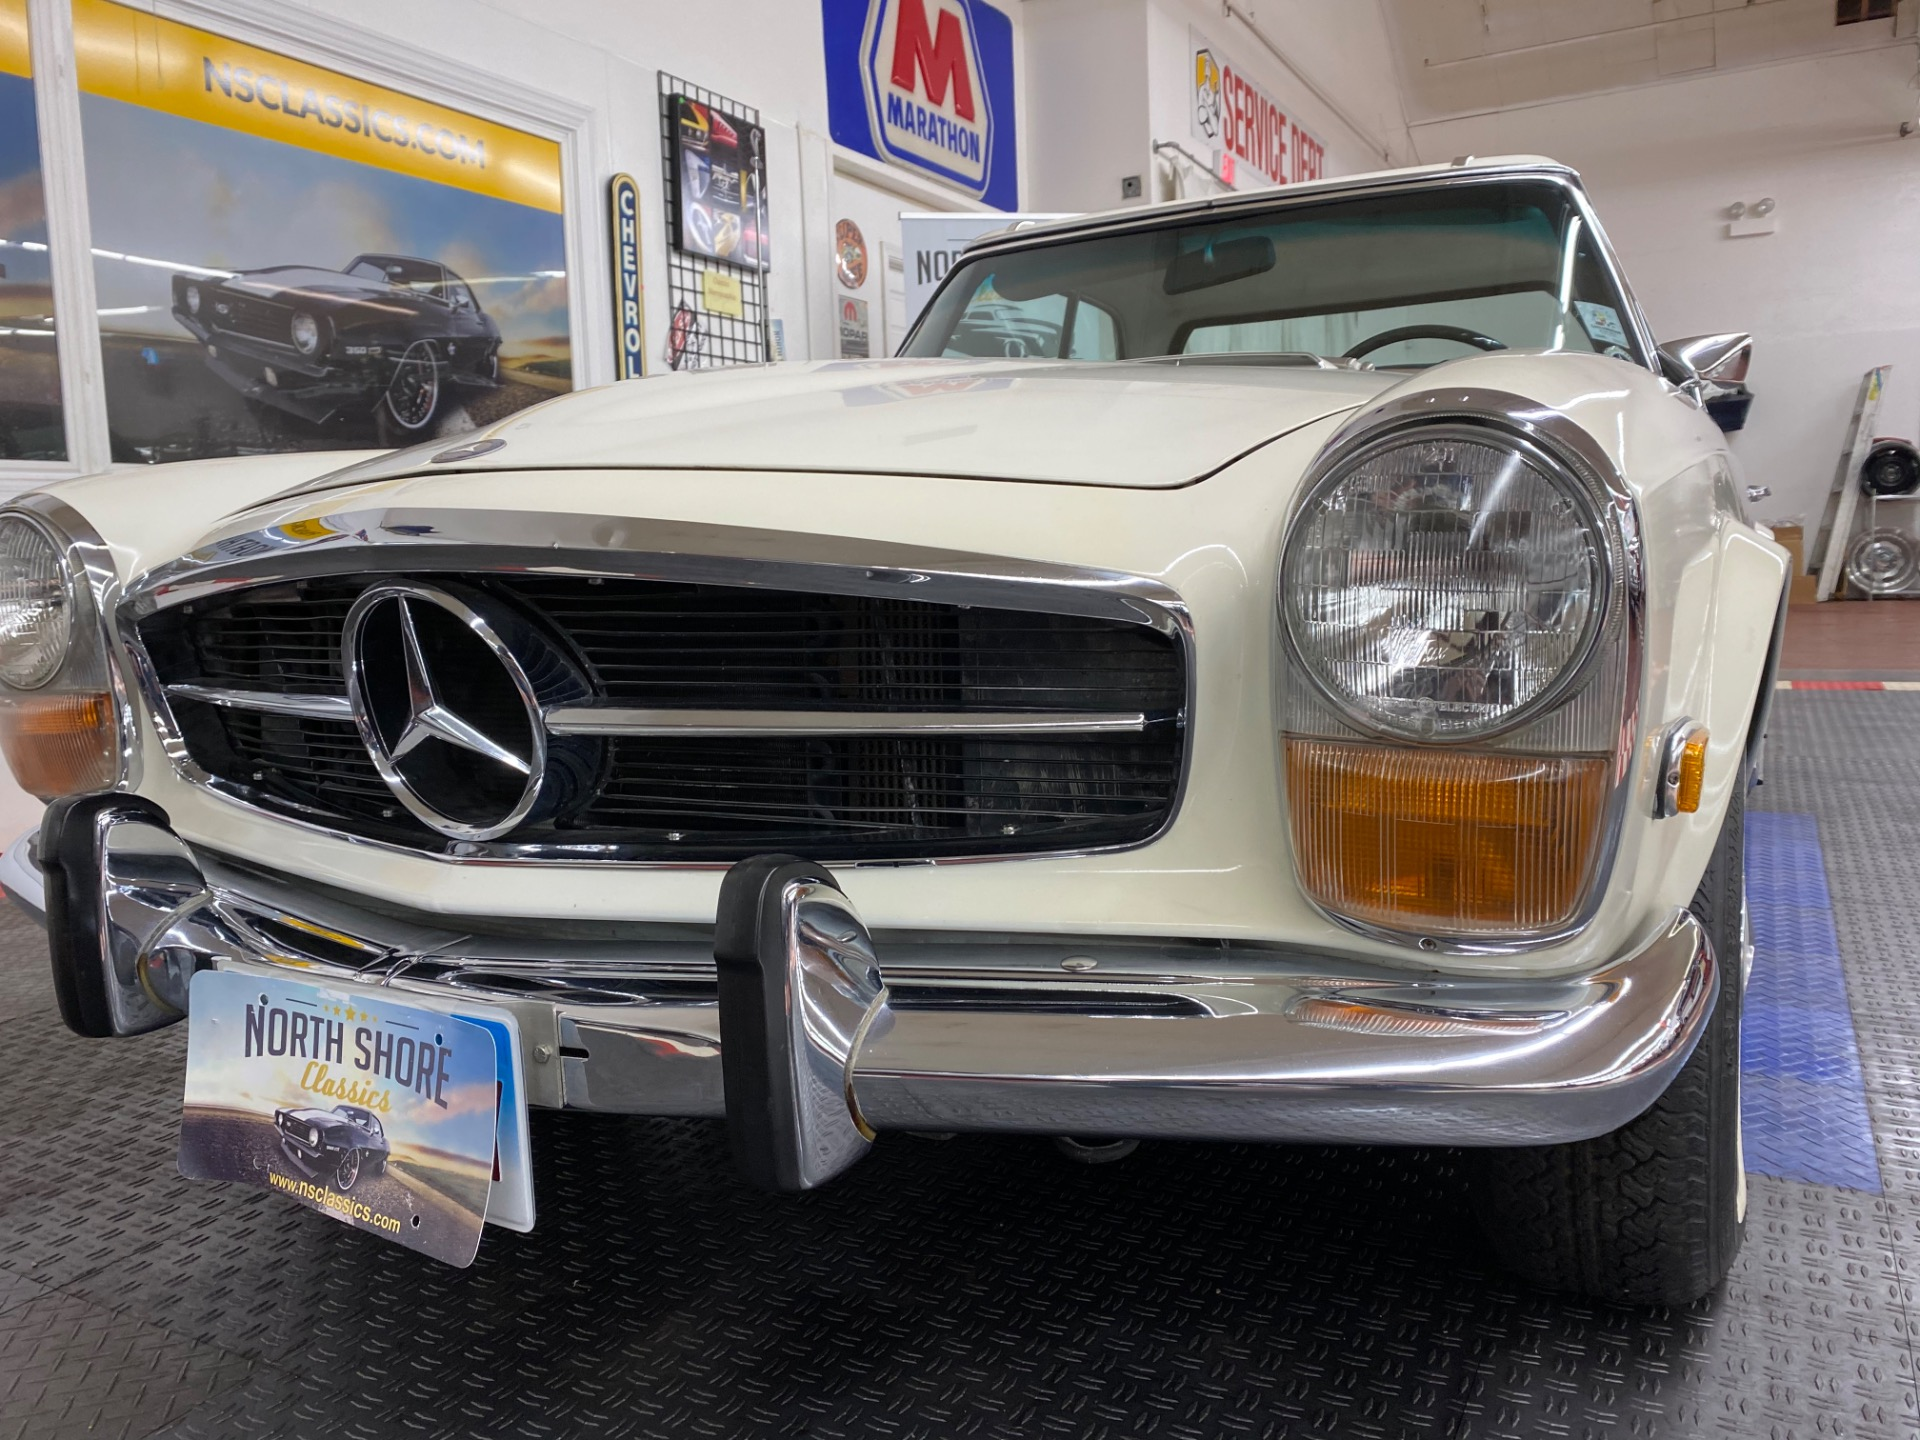 Used 1971 Mercedes-Benz 280 SL - TWO TOP CONVERTIBLE - VERY CLEAN - SEE VIDEO | Mundelein, IL